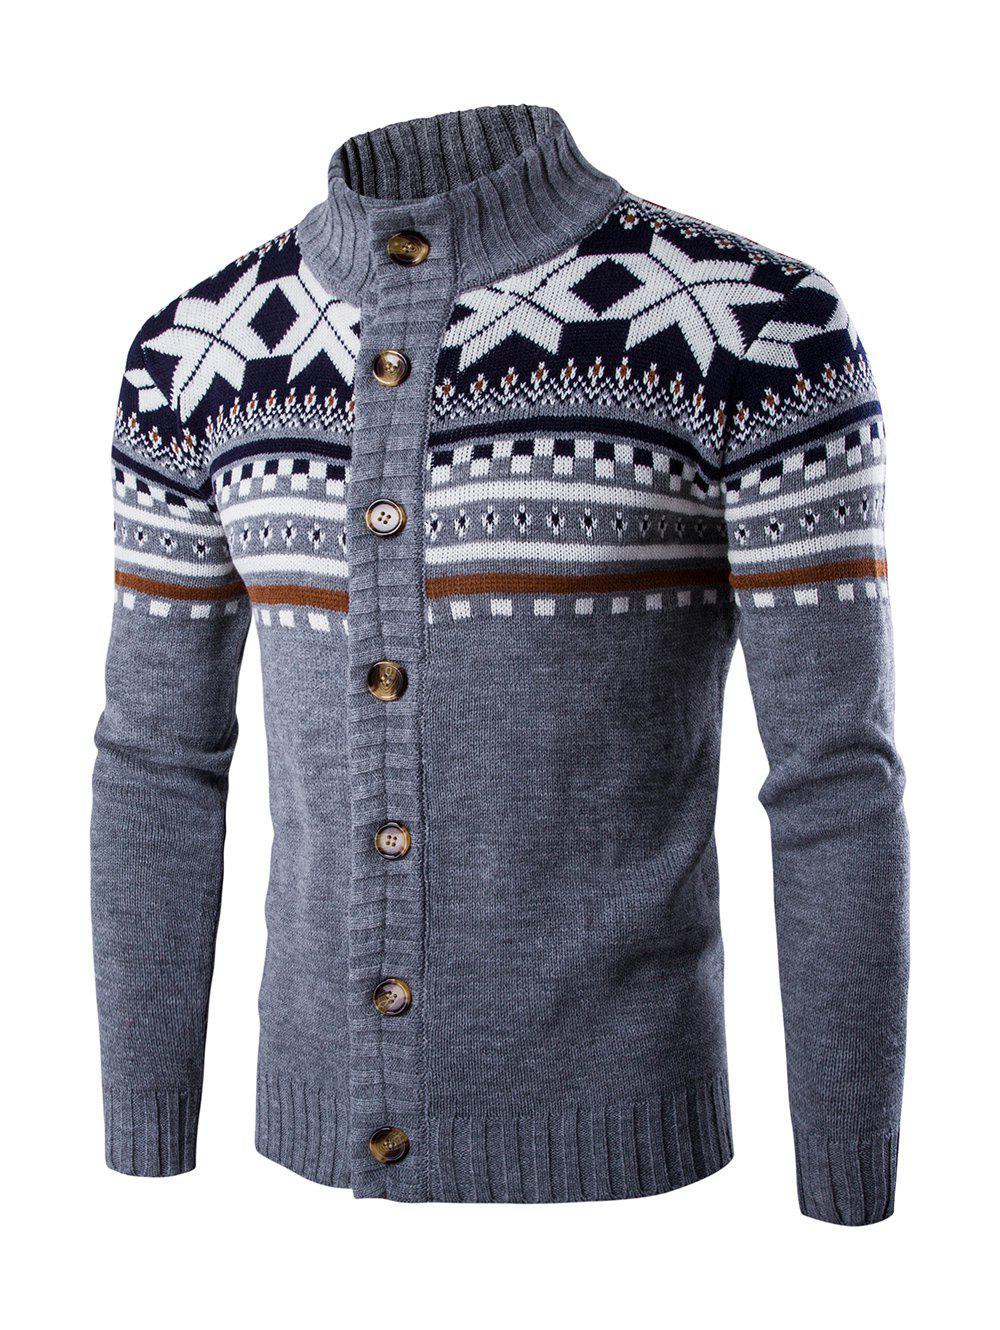 Geometric Design Long Sleeve Sweater CoatMEN<br><br>Size: L; Color: GRAY; Type: Cardigans; Material: Cotton Blends; Sleeve Length: Full; Collar: Turn-down Collar; Style: Casual; Weight: 0.500kg; Package Contents: 1 x Sweater;